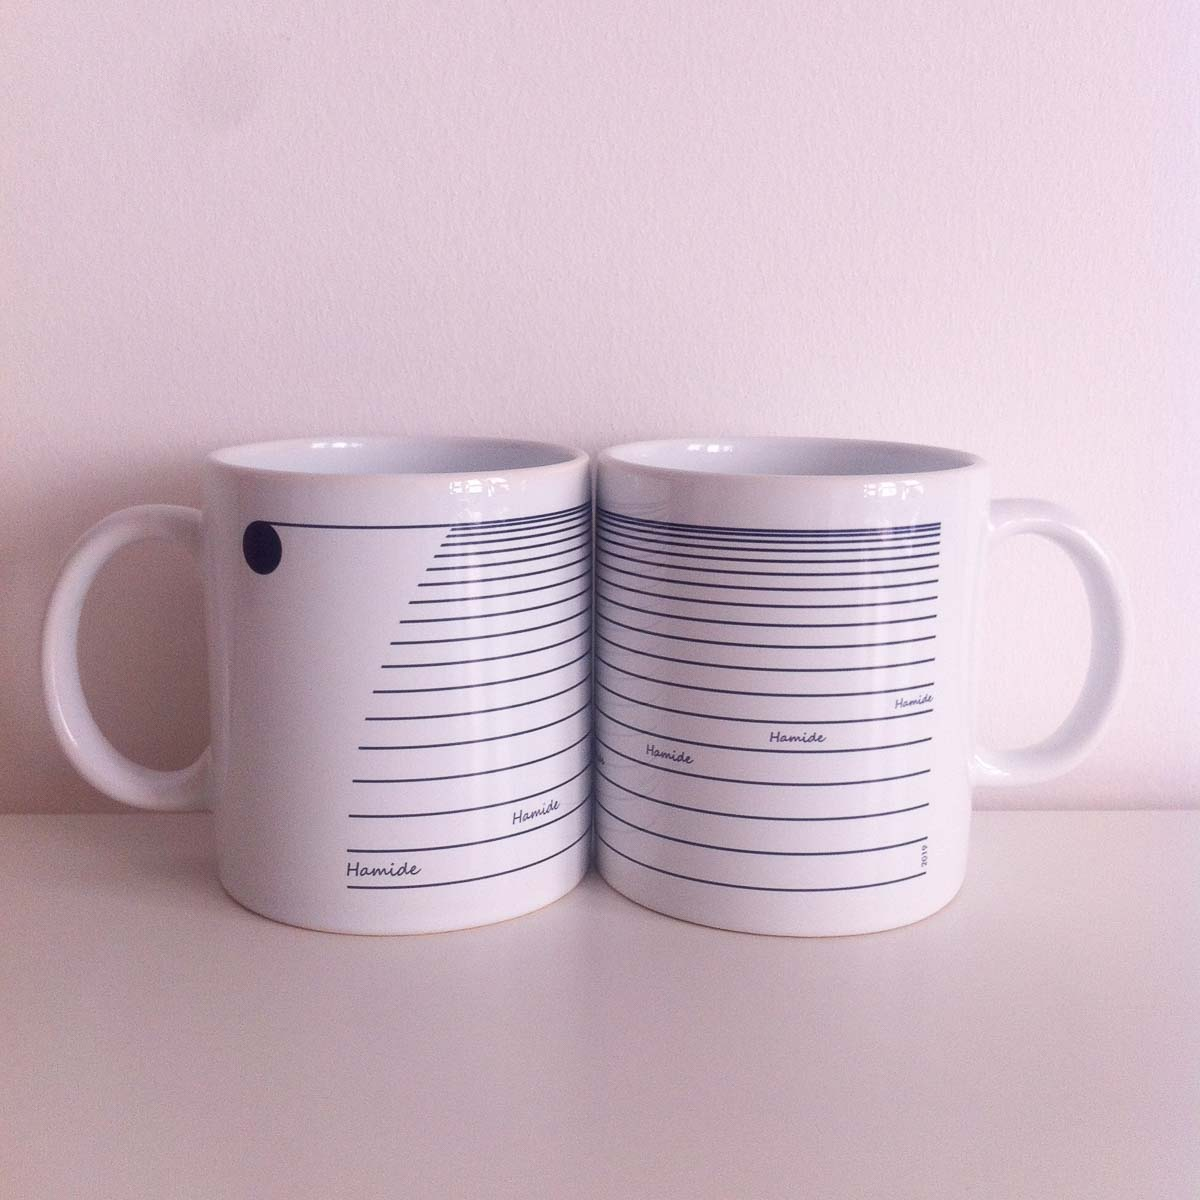 Two pieces of 7th year coffee mugs facing each other